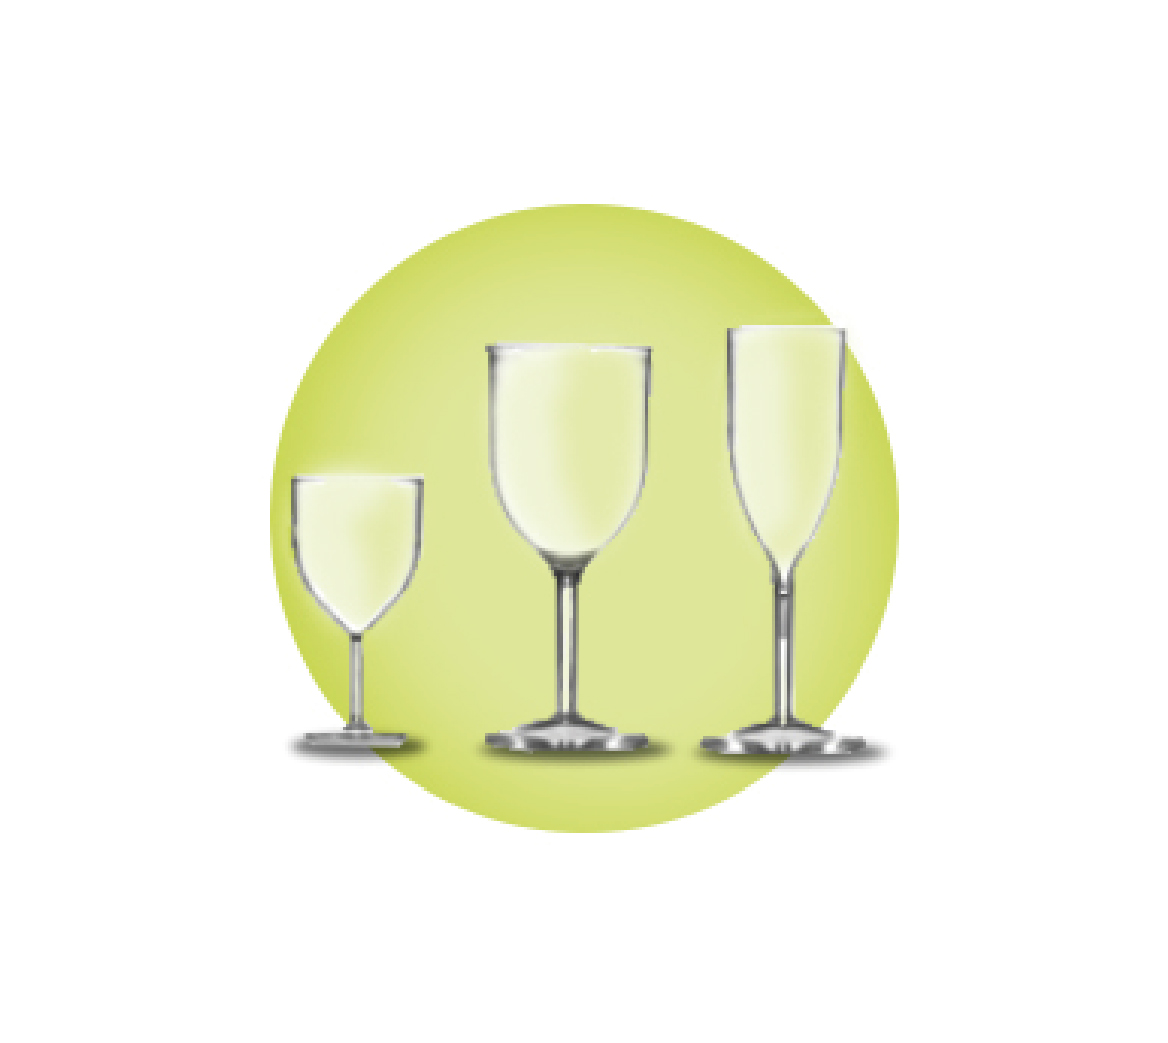 Econ Wine Glasses and Champagne Glasses Polystyrene